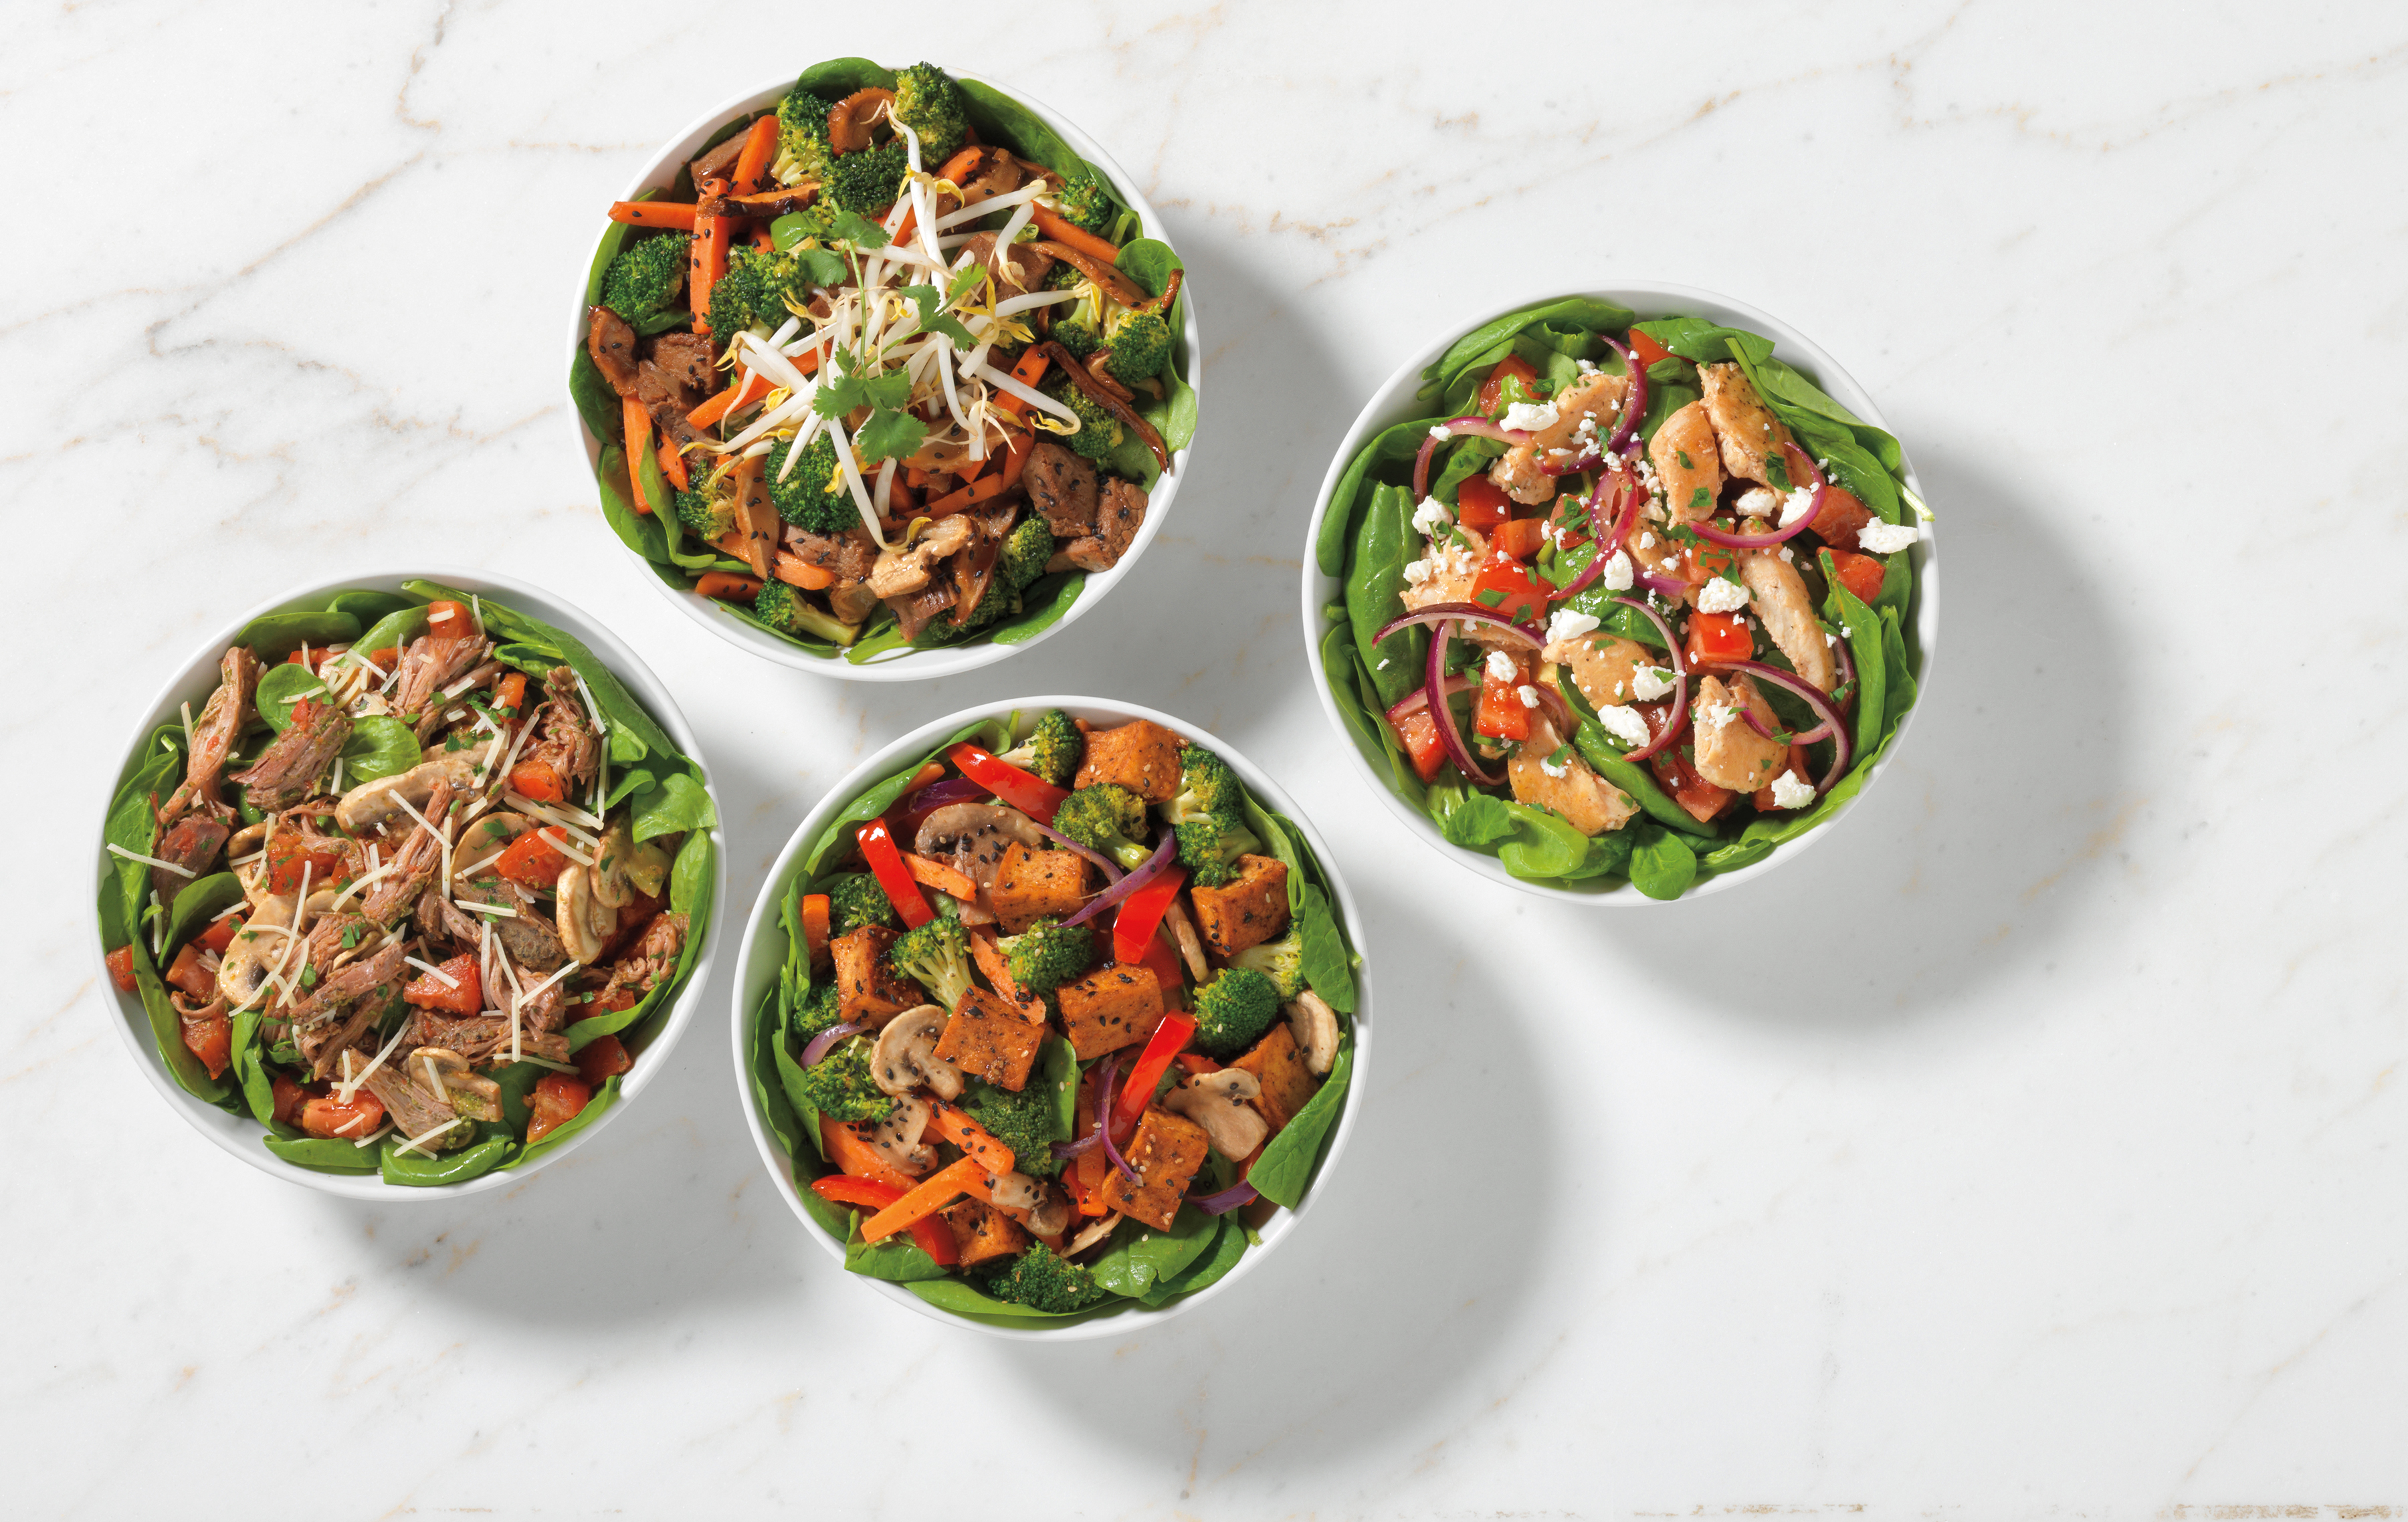 Noodles & Co.'s newest menu options are packed with protein and vegetables — and without the noodles.